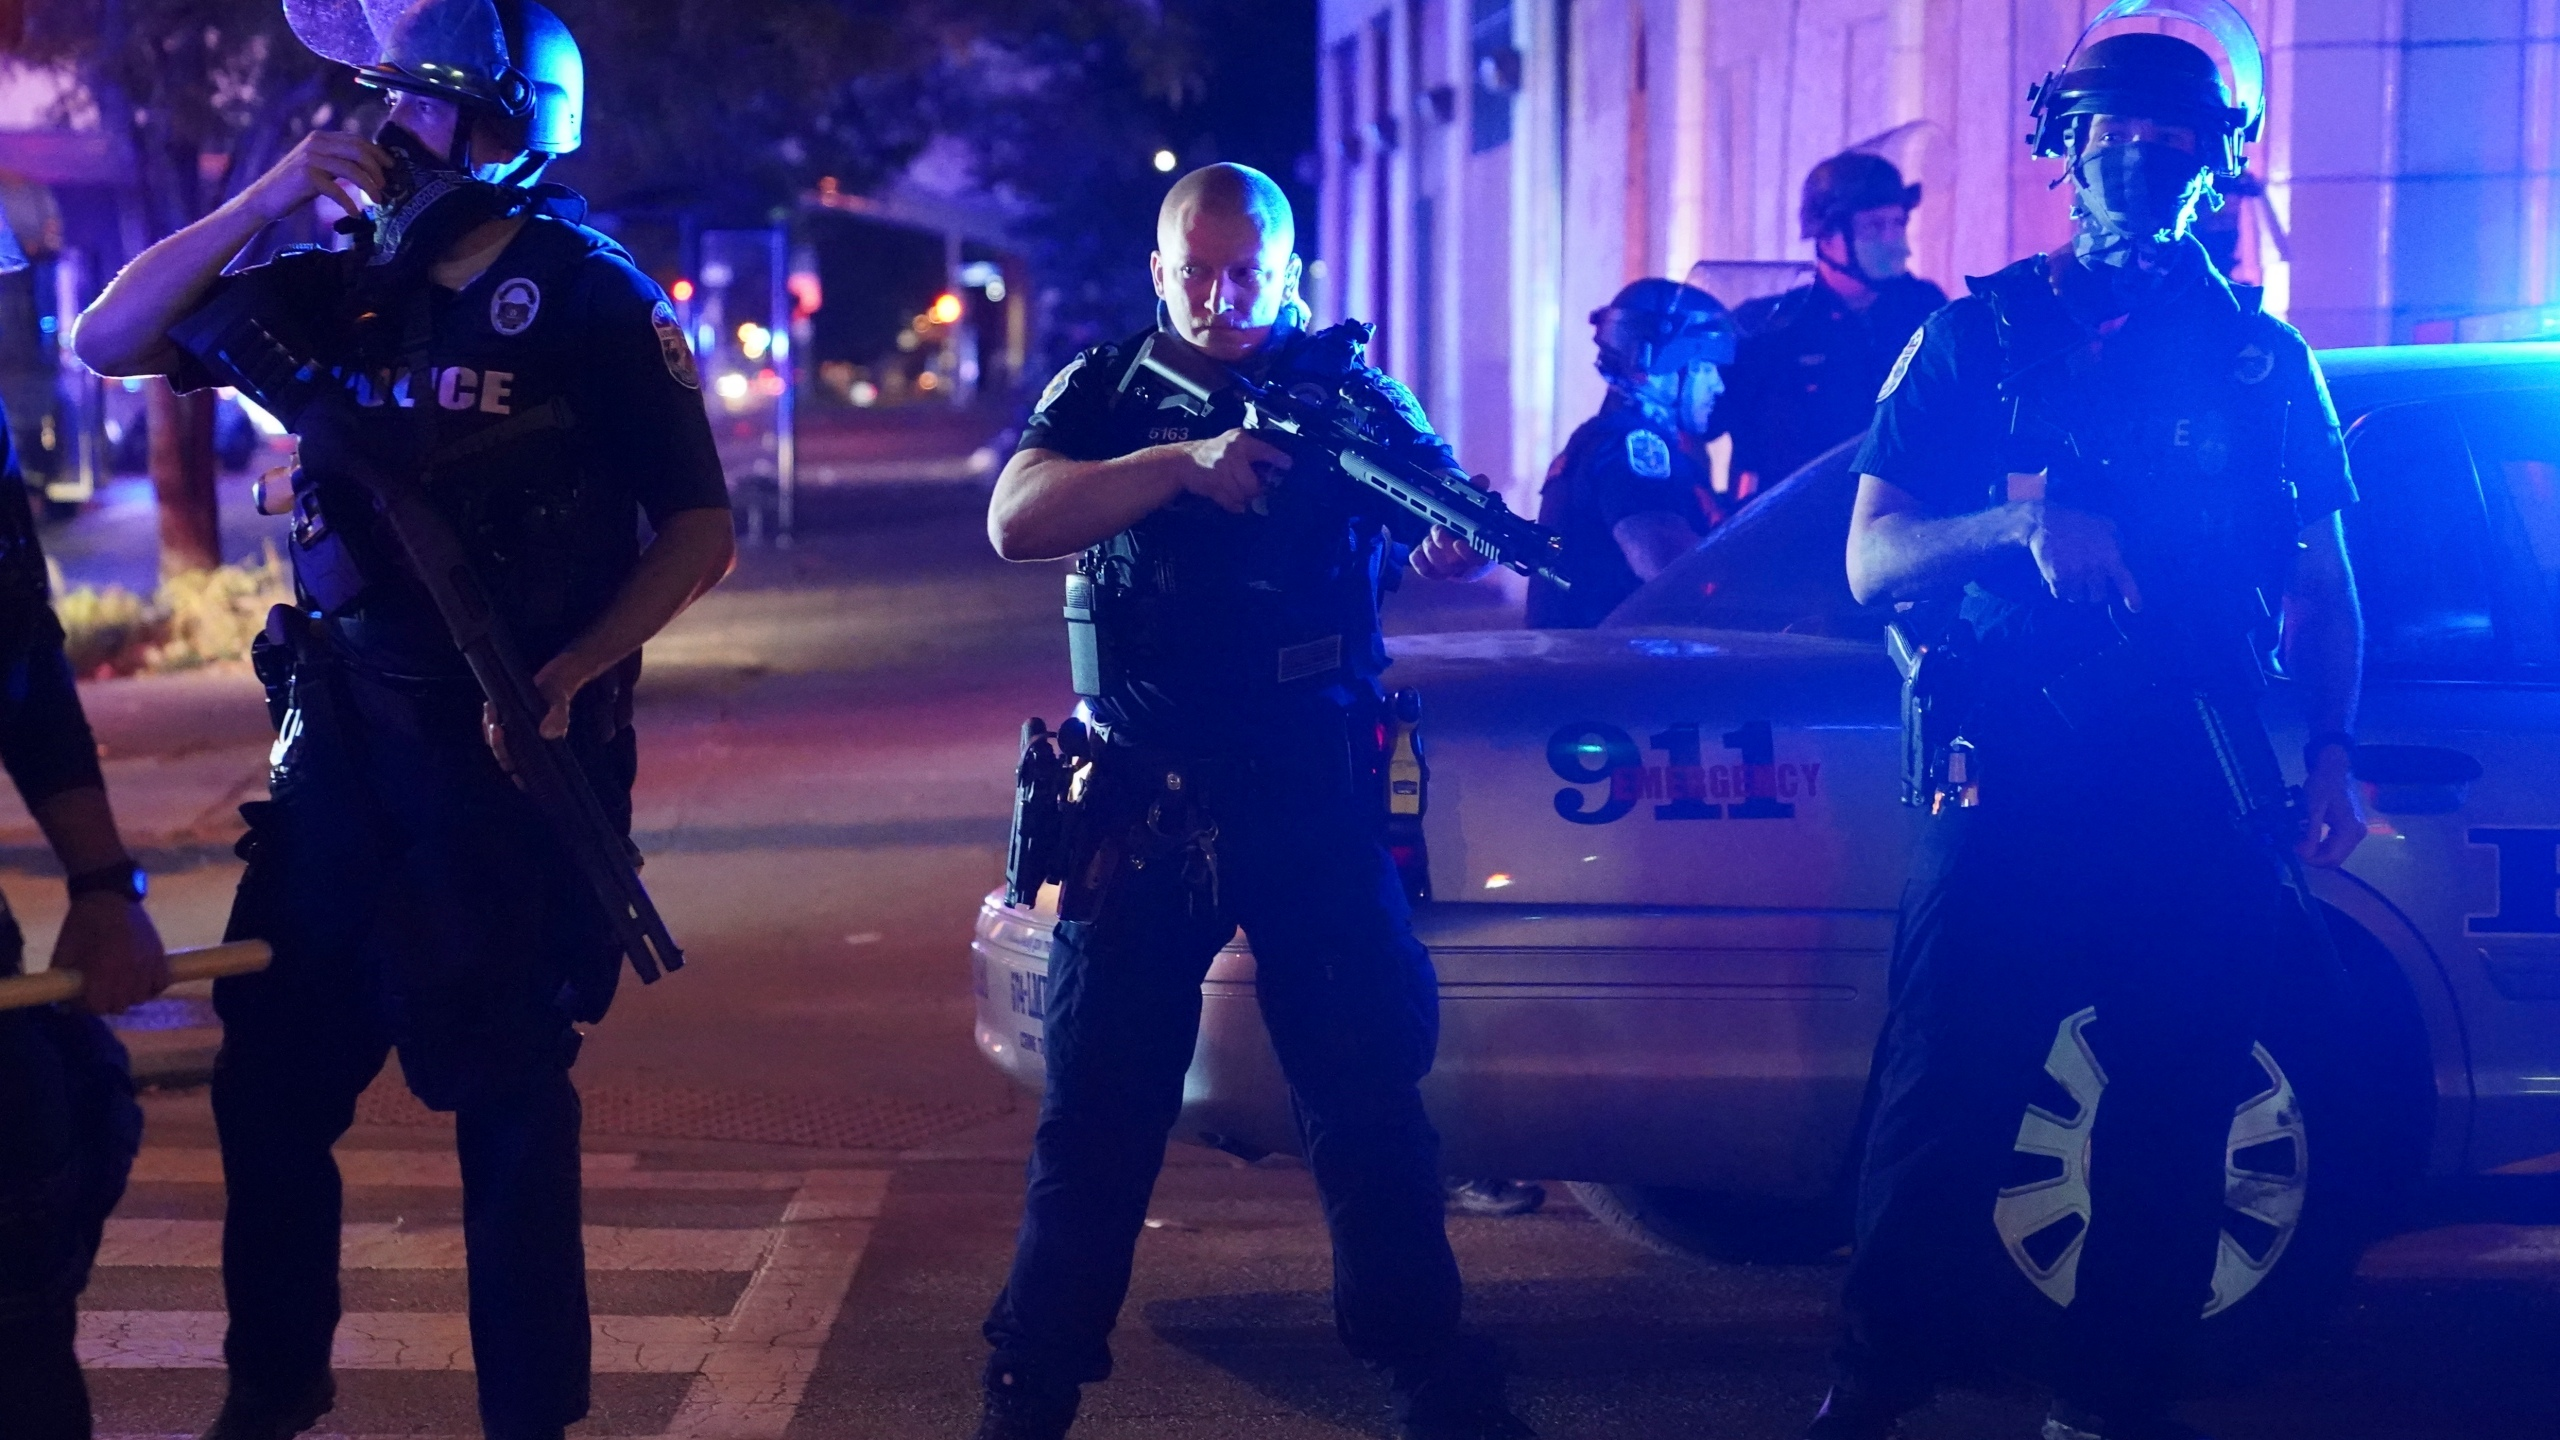 Police stand at an intersection after an officer was shot Sept. 23, 2020, in Louisville, Kentucky. (John Minchillo / Associated Press)